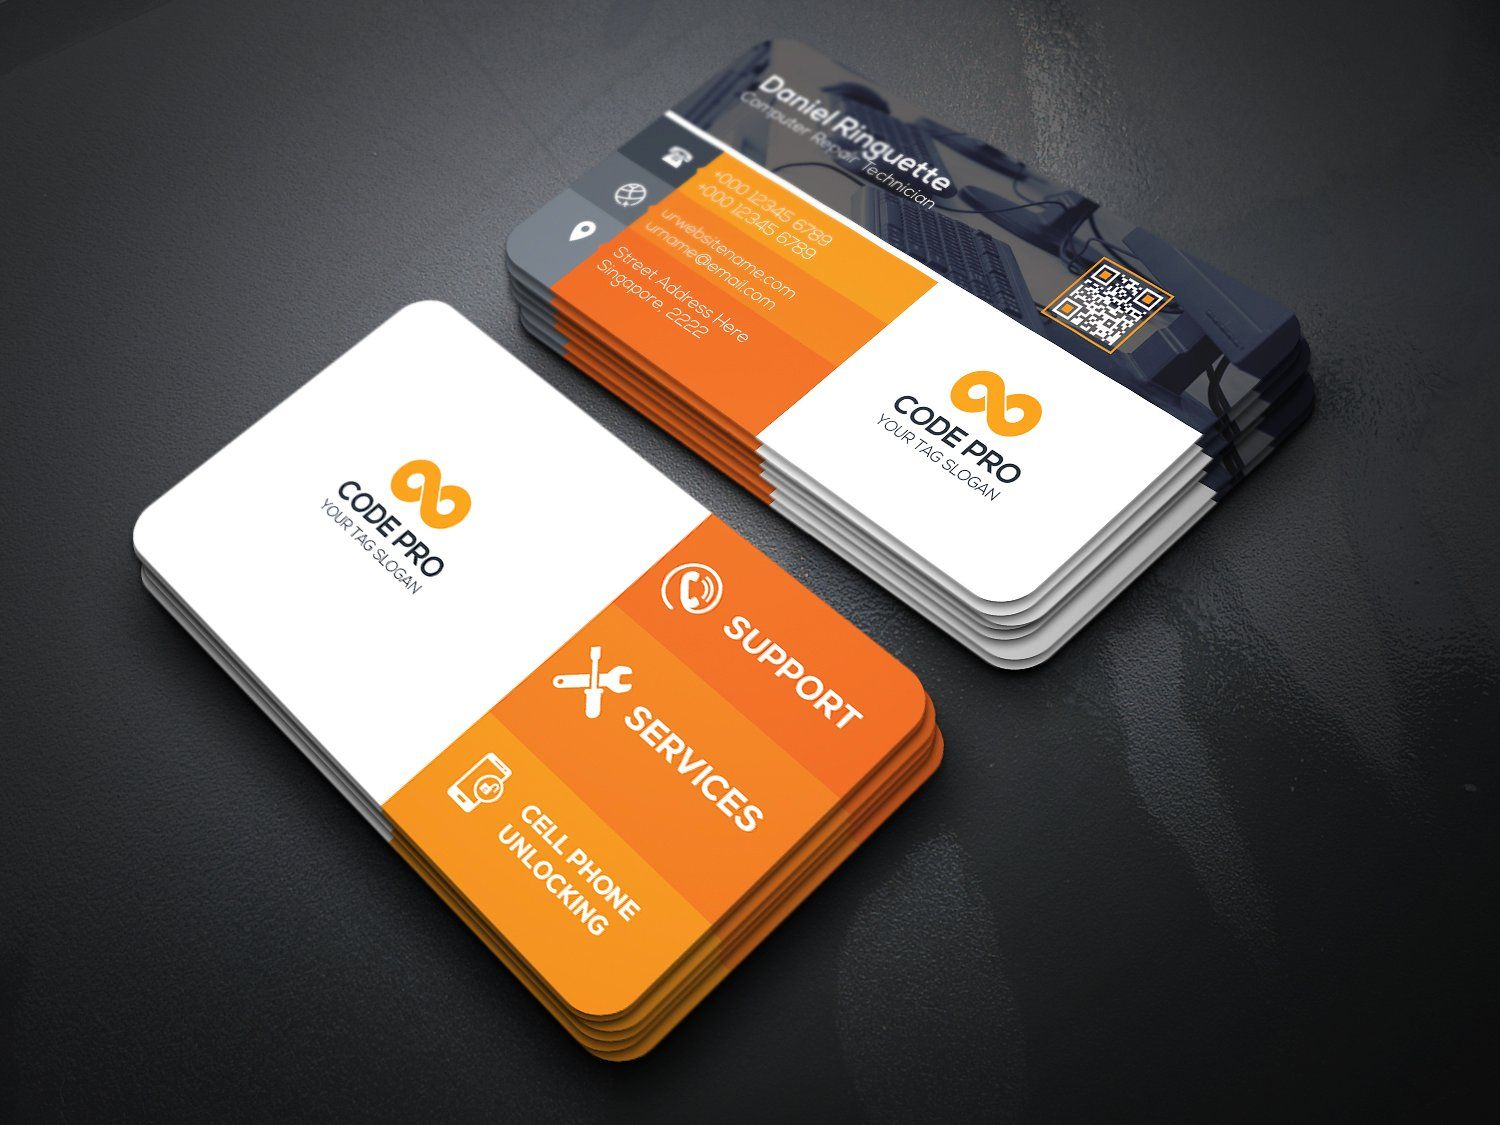 Computer Mobile Repair Business Card Business Card Template Personal Business Cards Card Template